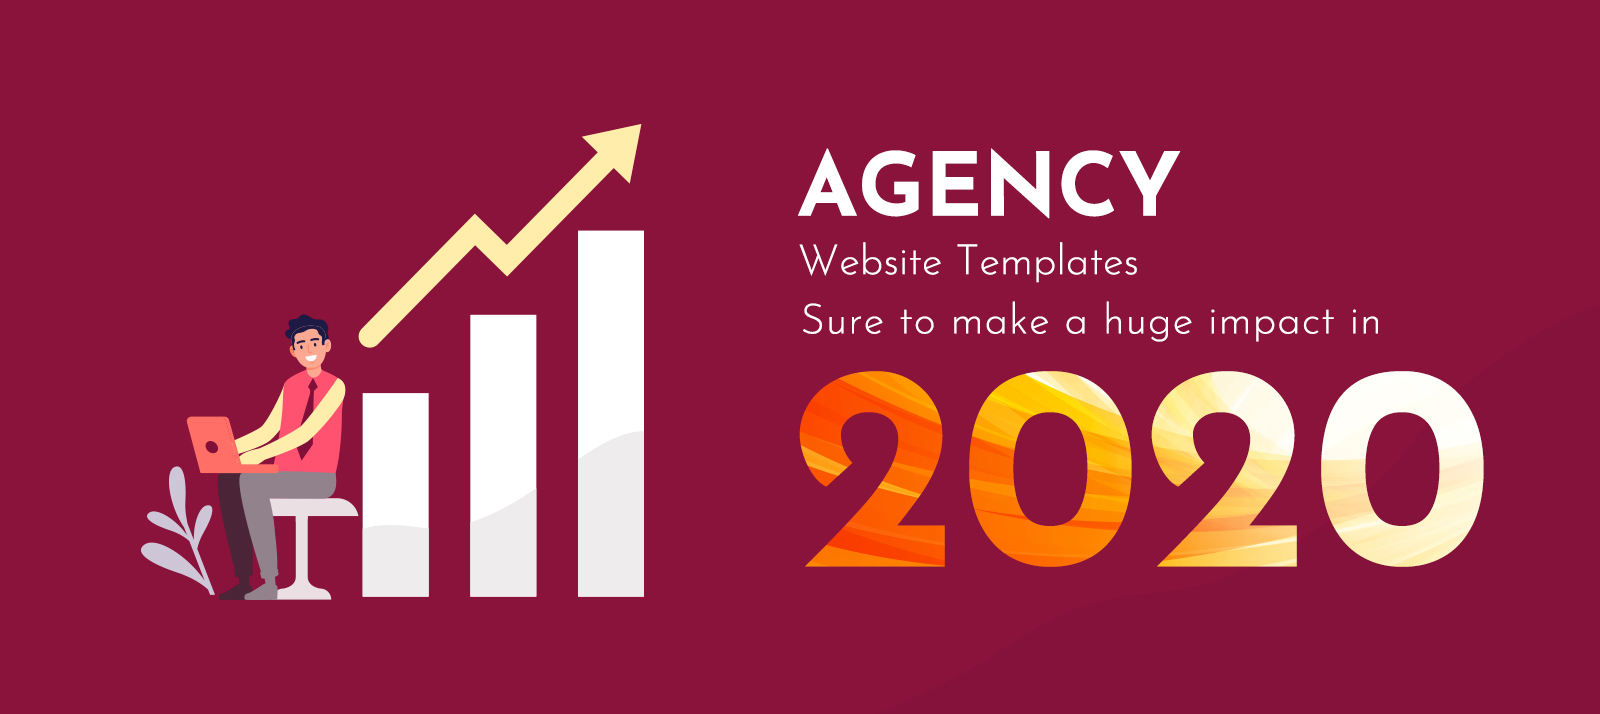 10+ Bootstrap Agency Website Templates Sure To Make a Huge Impact in 2020